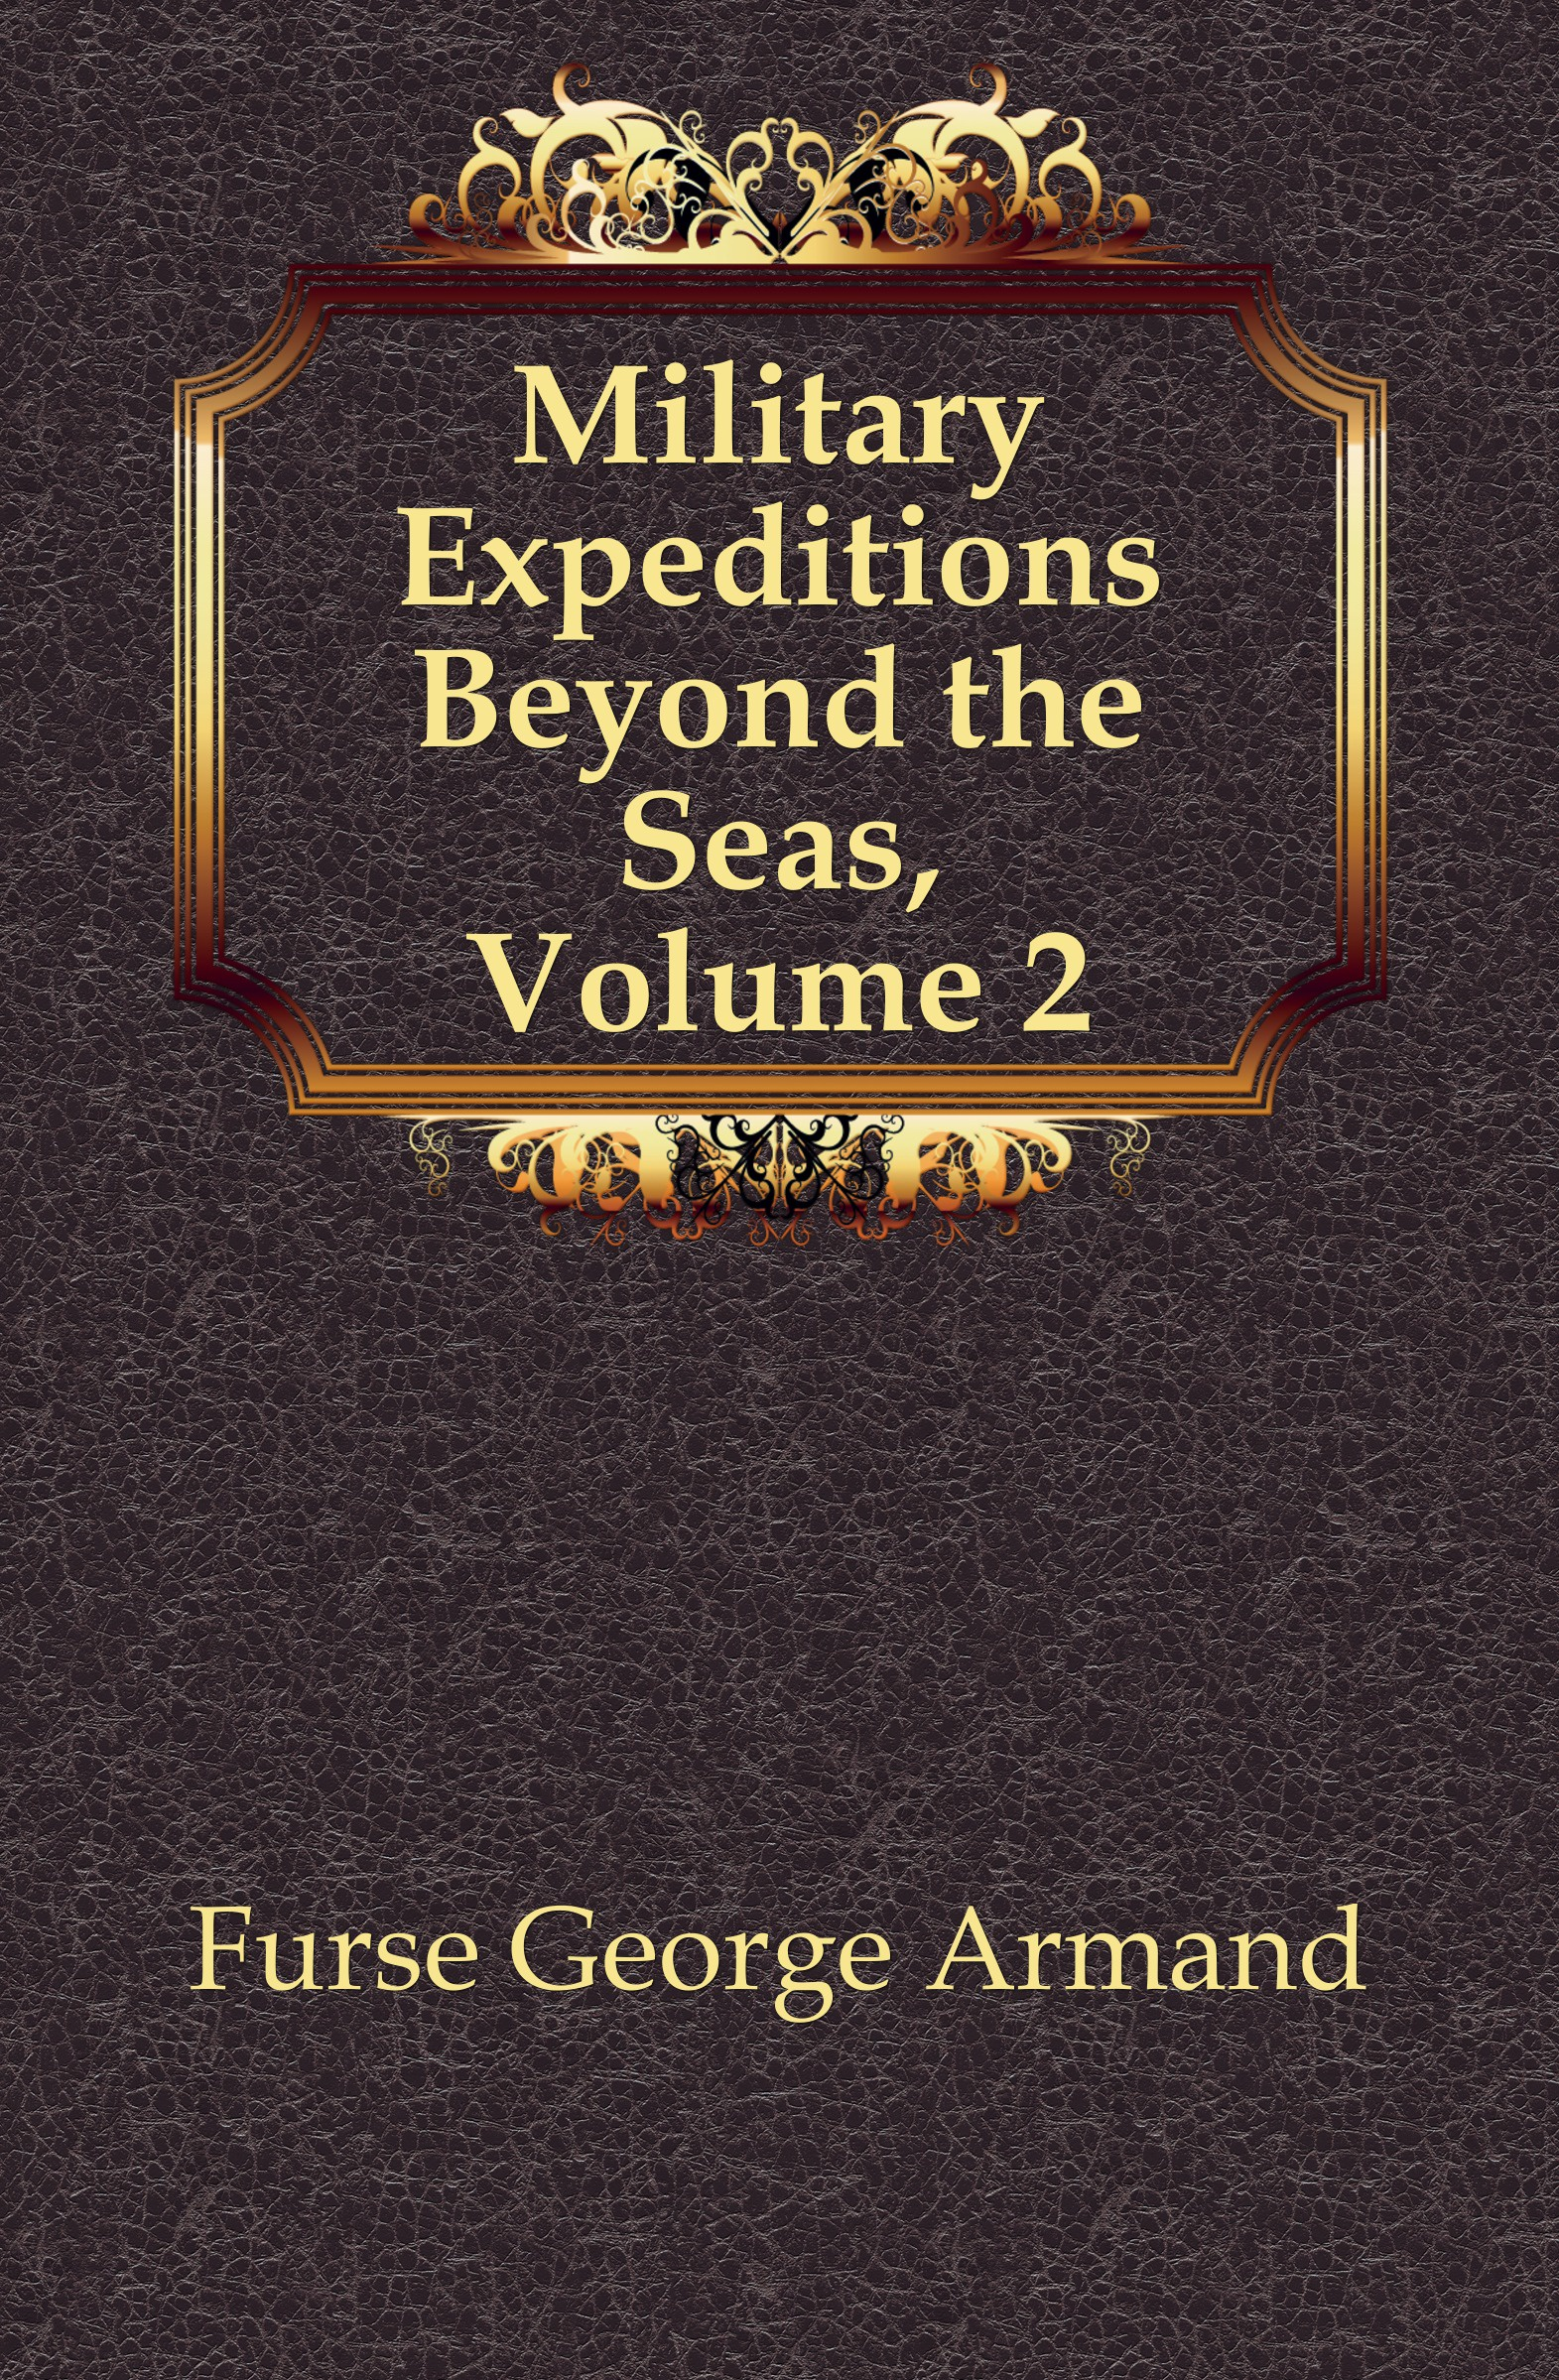 Furse George Armand Military Expeditions Beyond the Seas, Volume 2 gone beyond volume 2